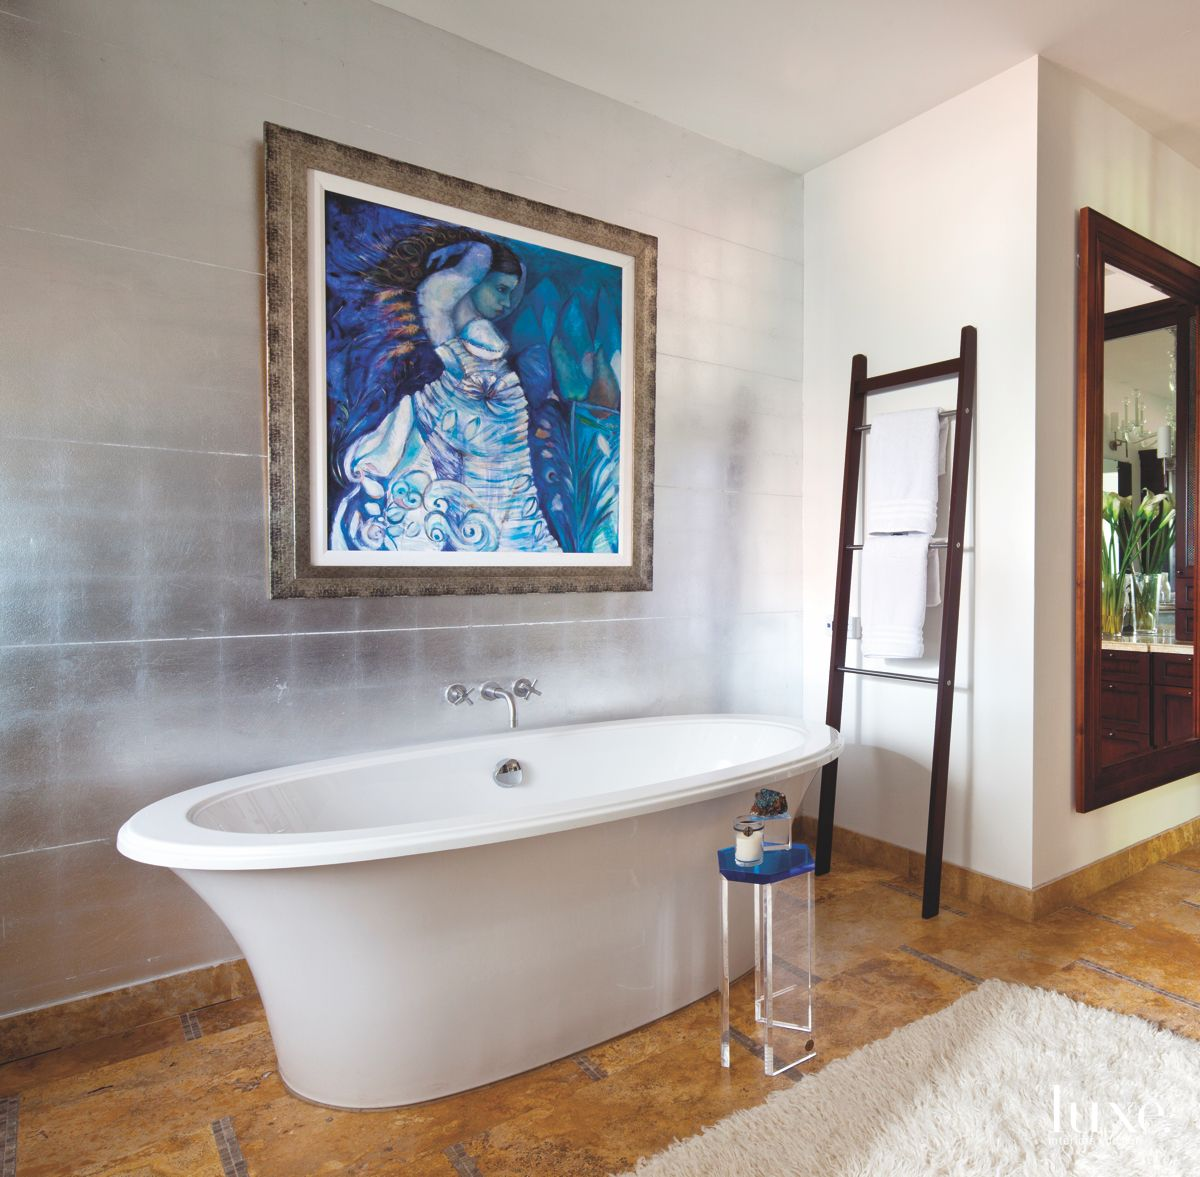 Moody Blue Artwork Master Bathroom with Large Soaking Tub, Lucite Side Table